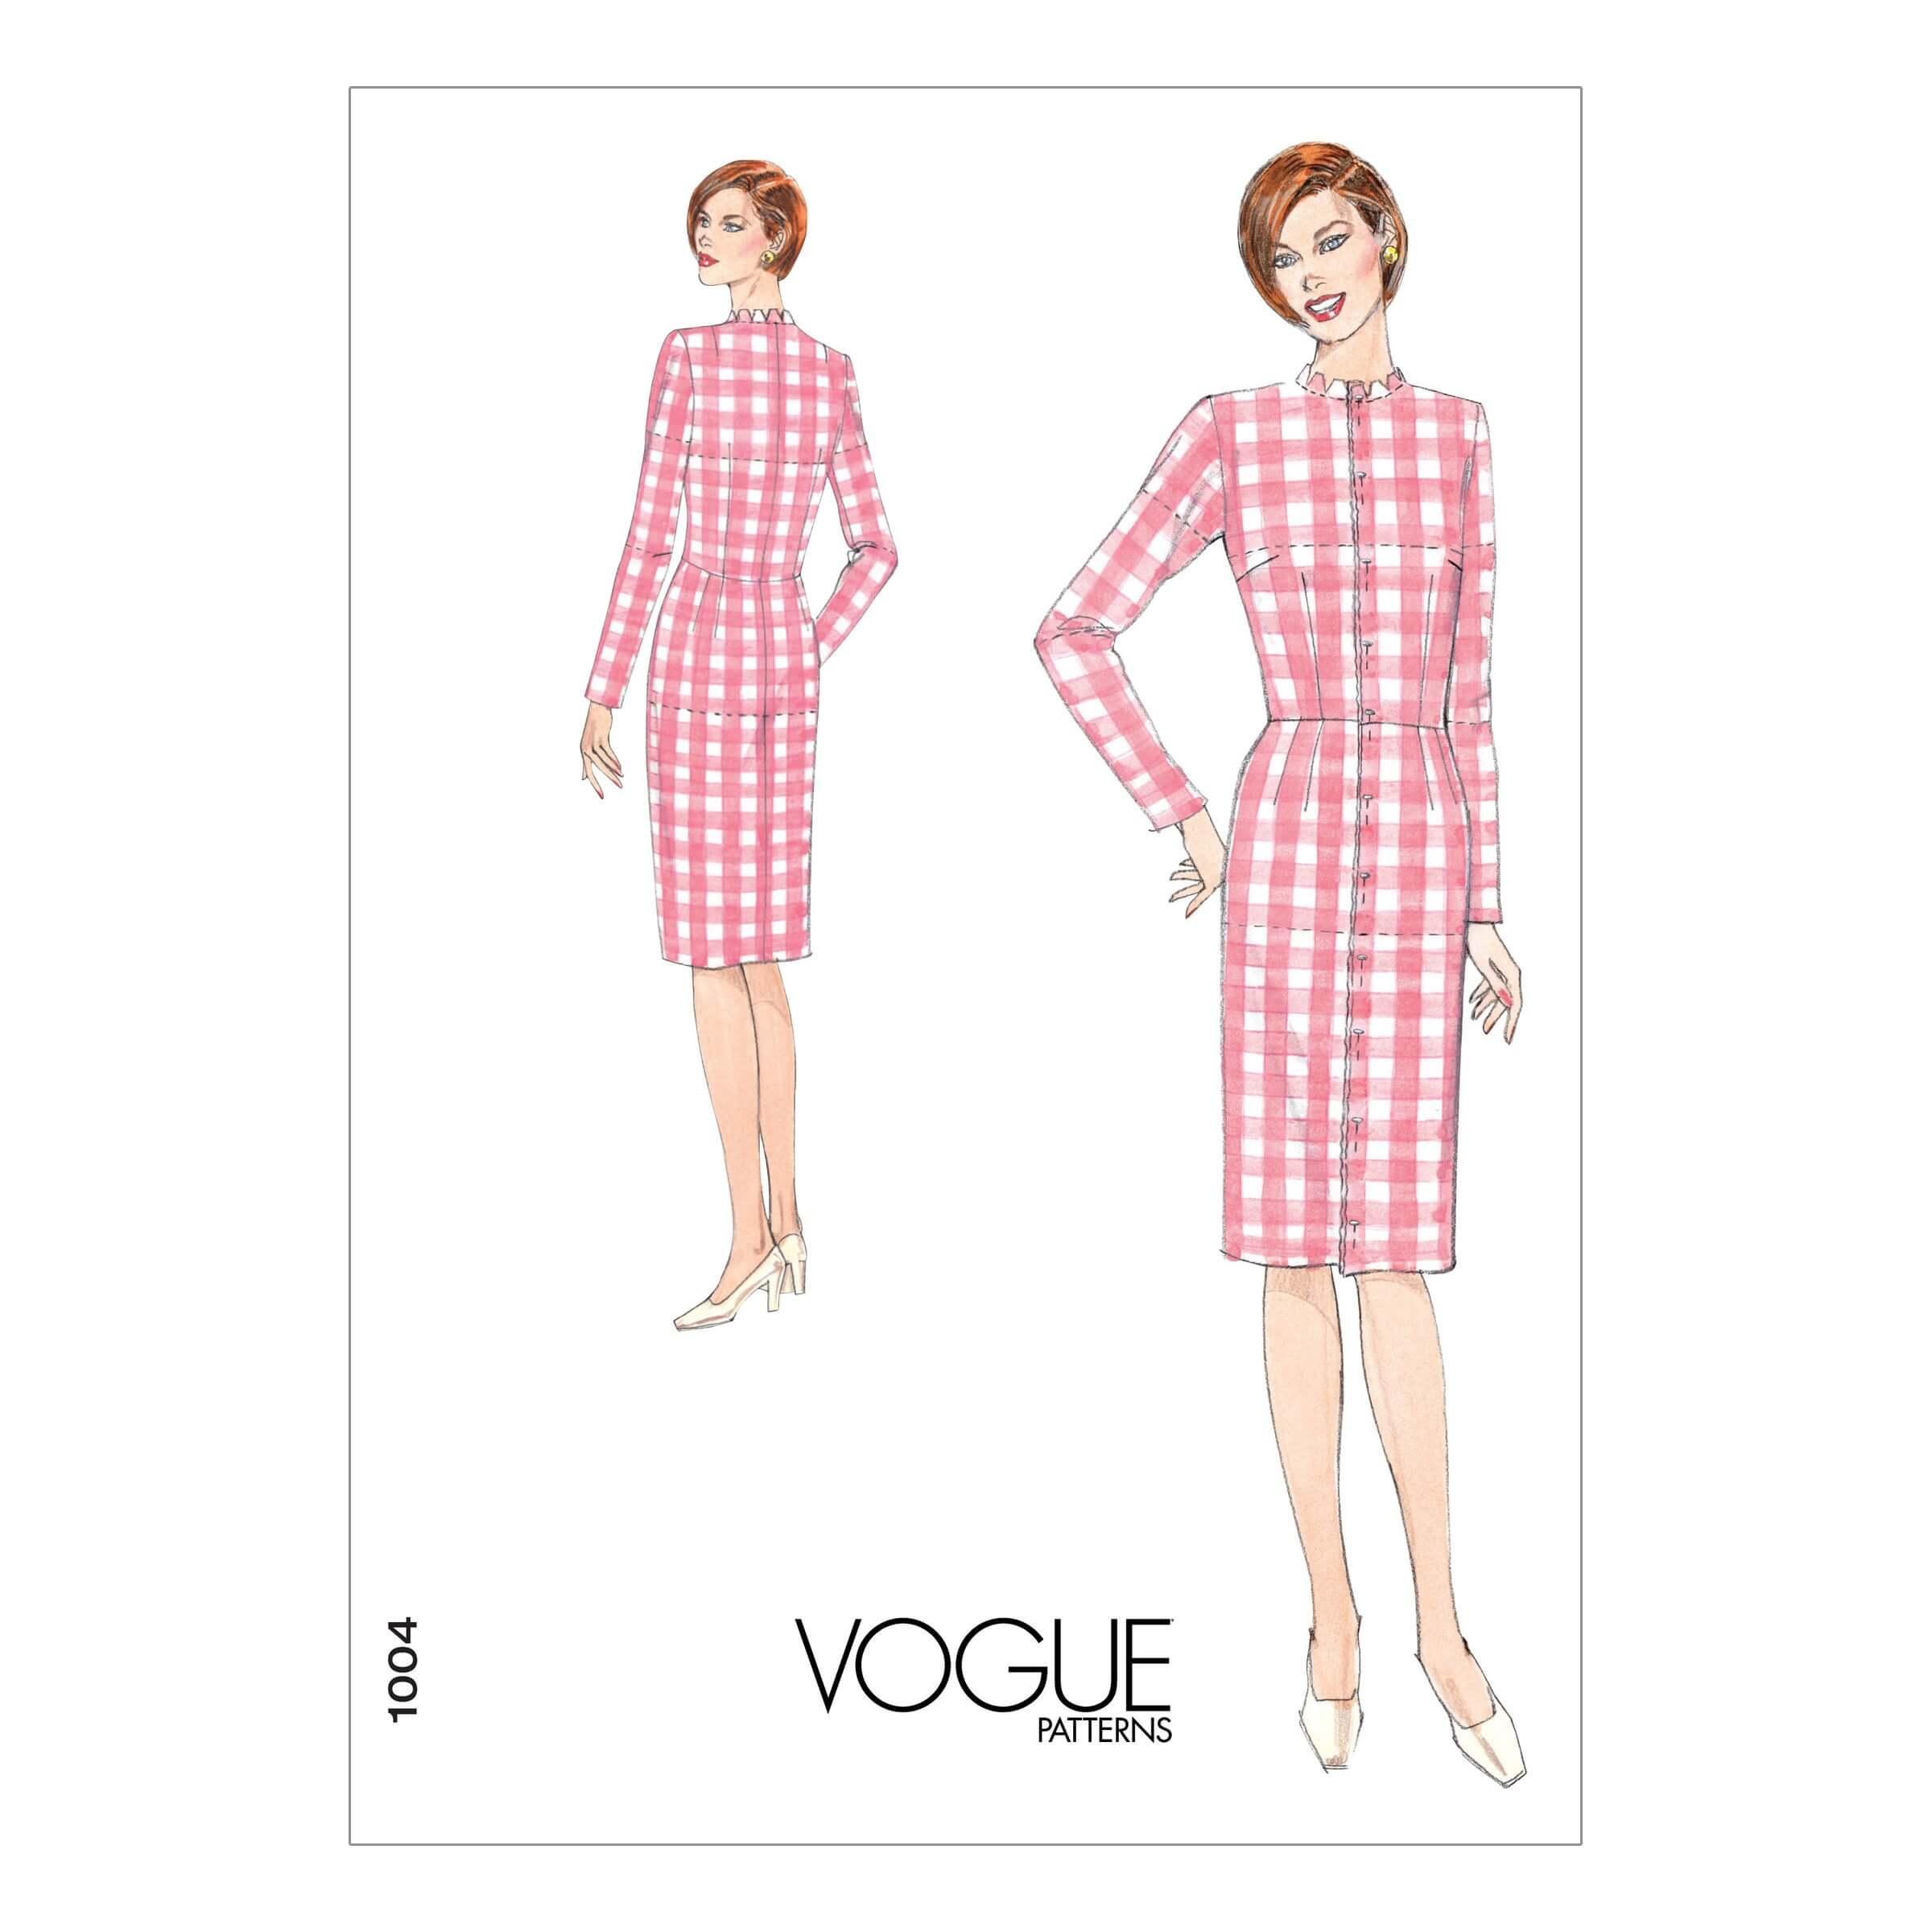 Vogue Sewing Pattern V1004 Women's Slim Fit Dress Fitting Shell